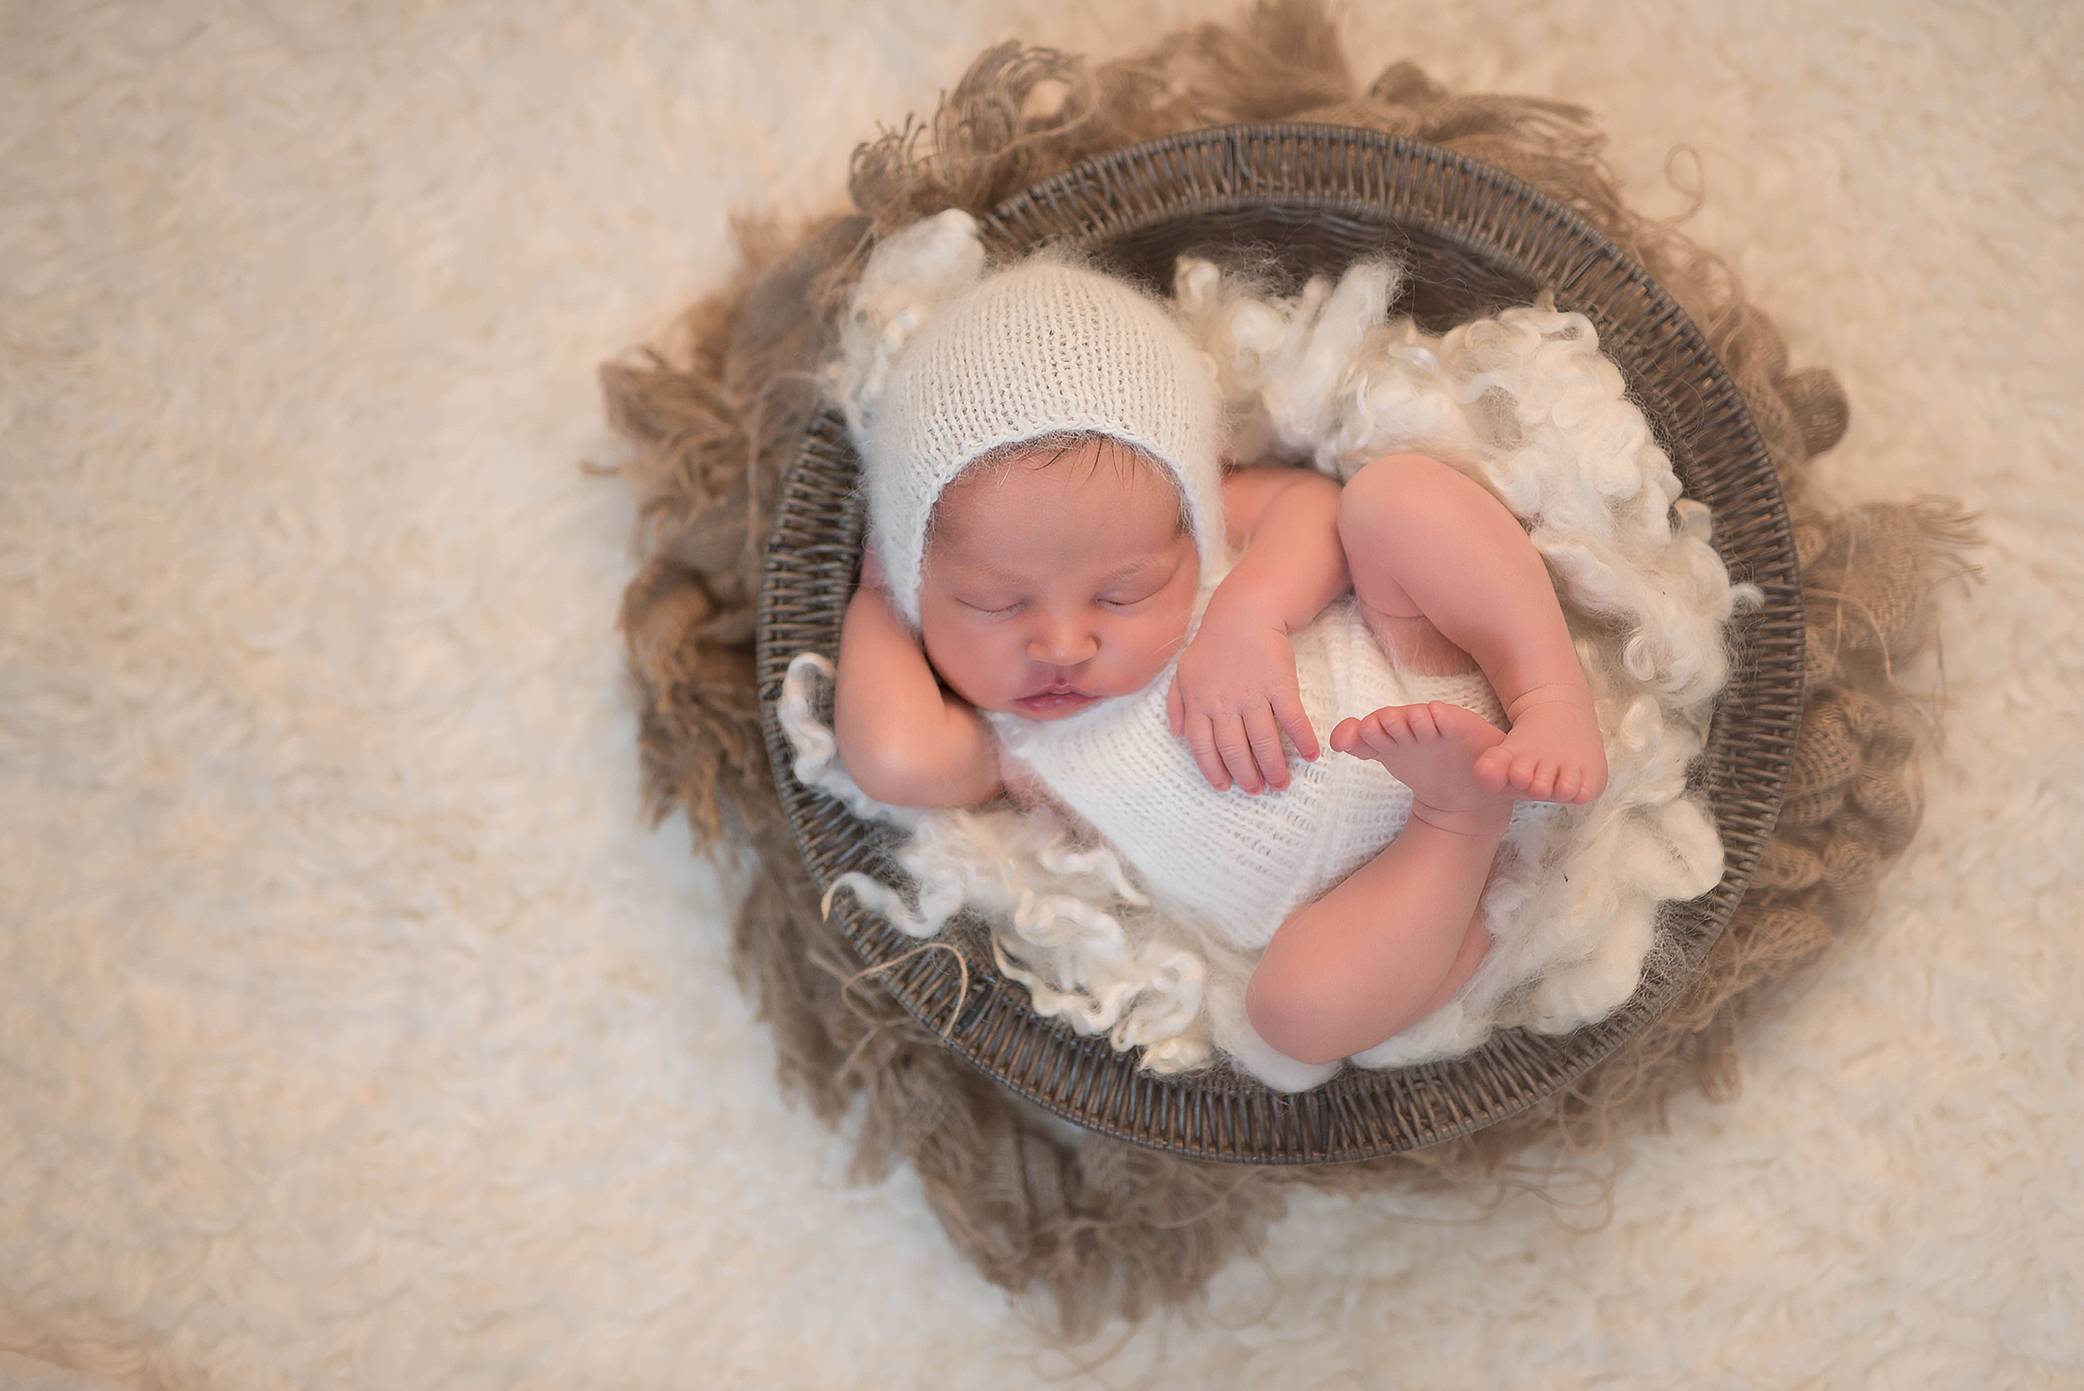 Infant photographer in Pittsburgh. Julie Bradley is Pittsburgh